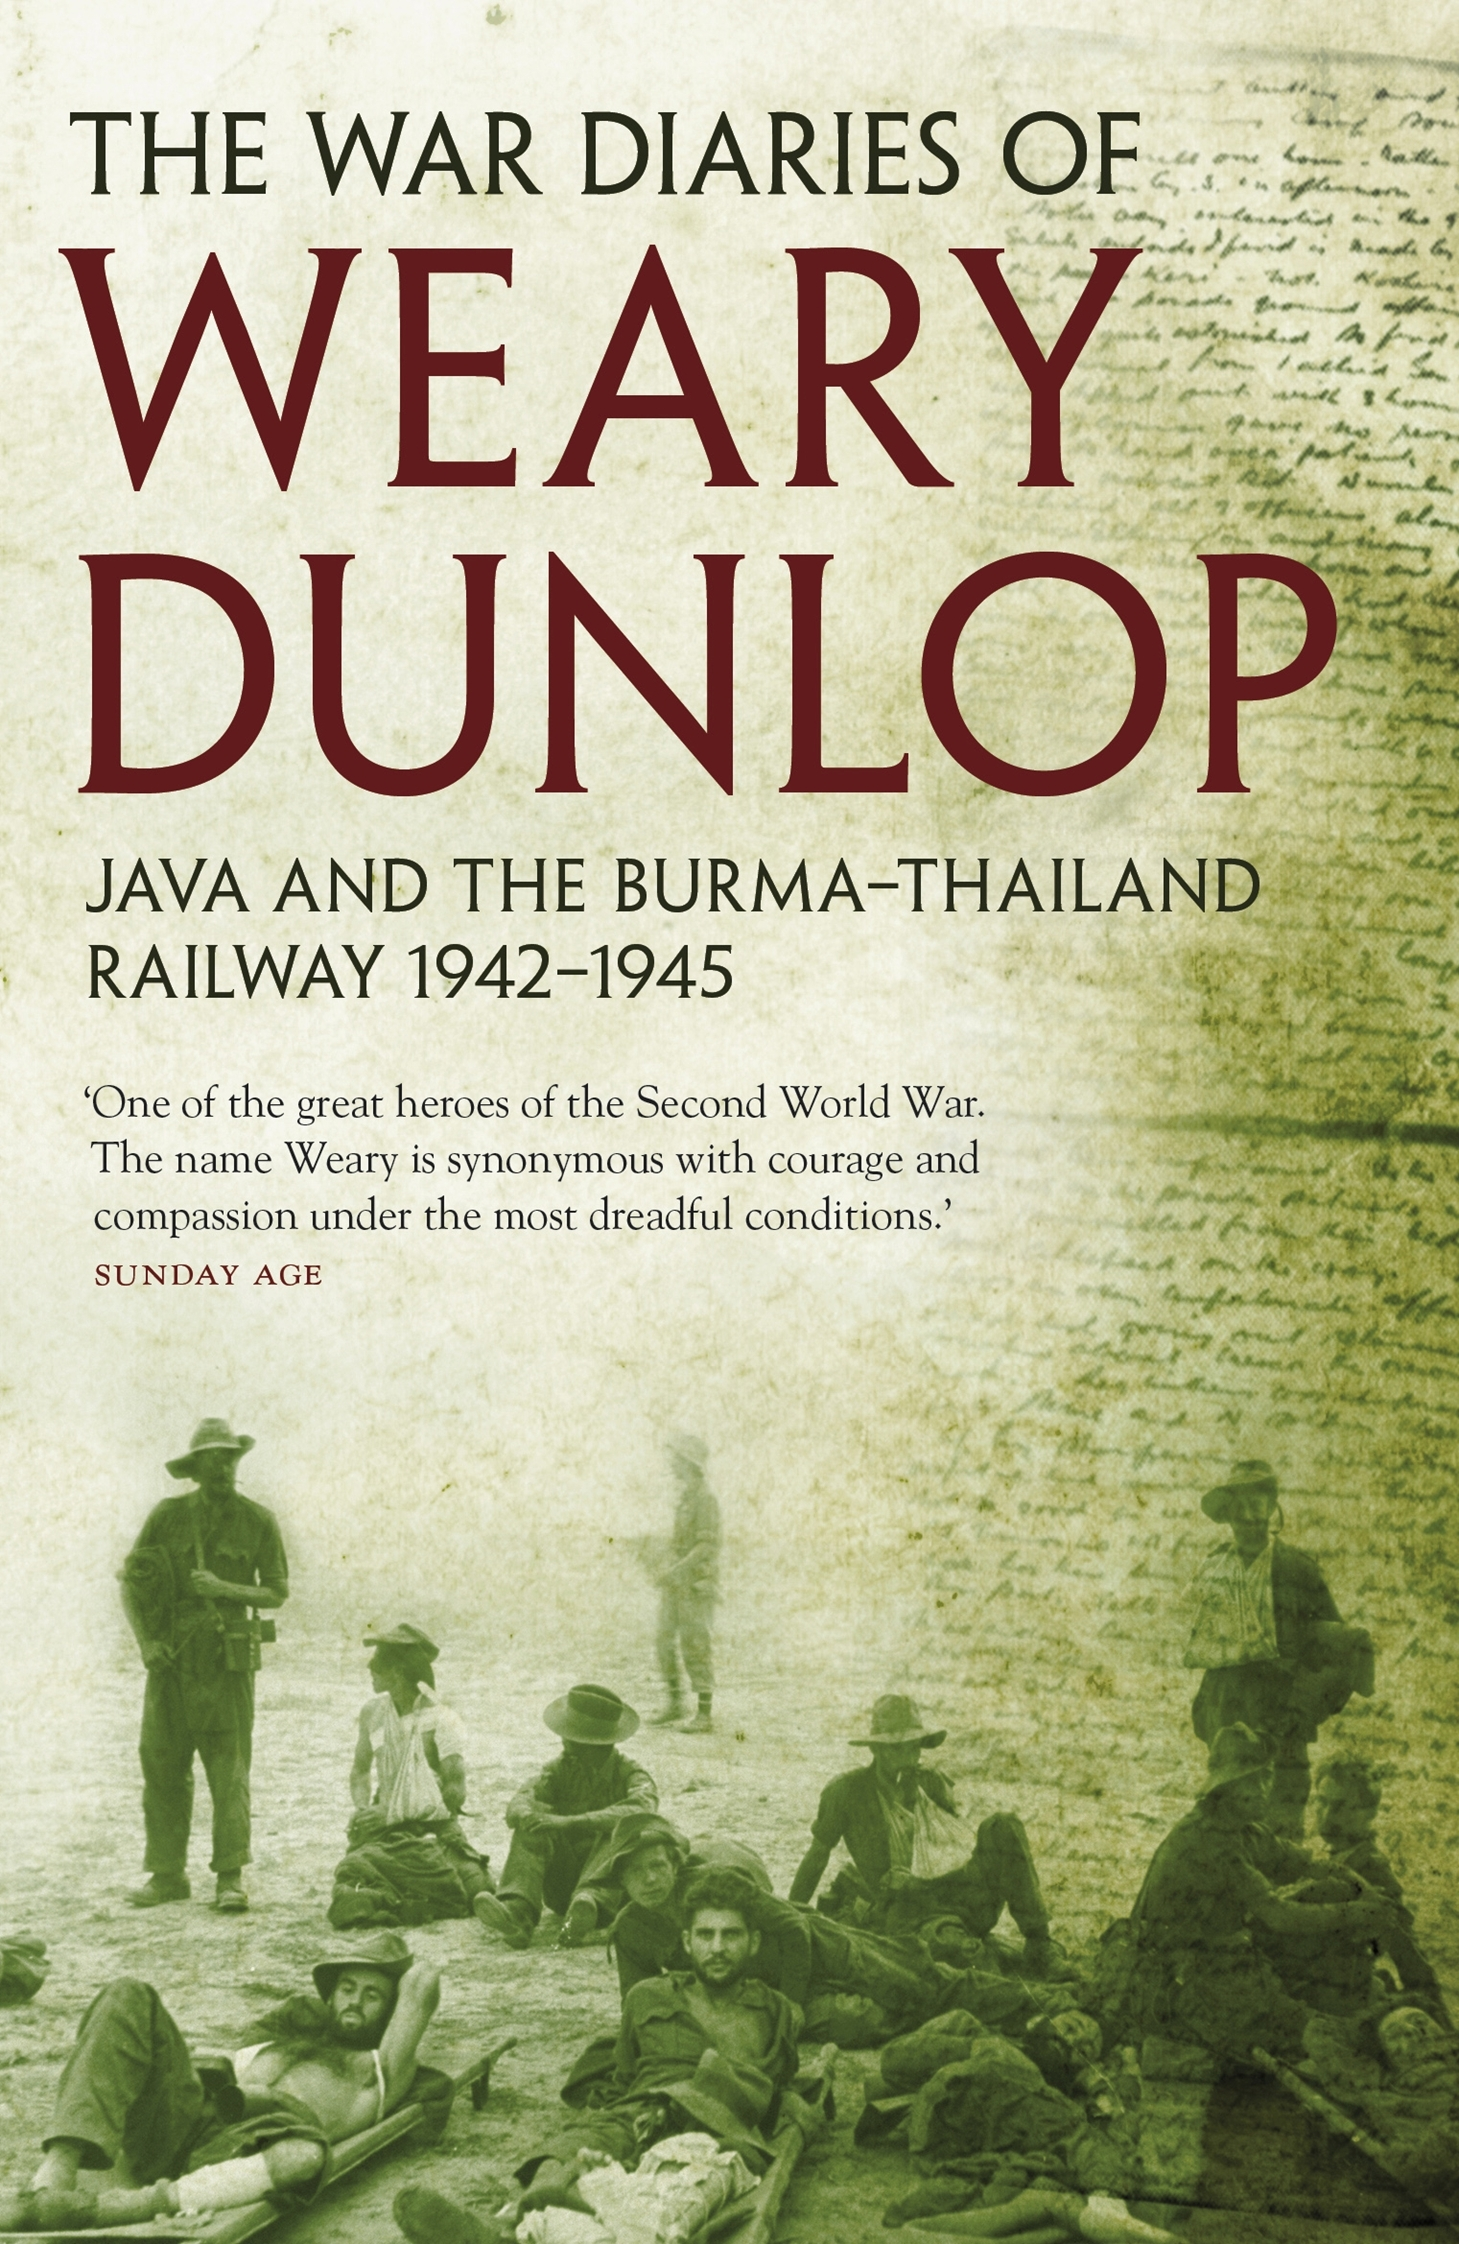 Book Cover: The War Diaries of Weary Dunlop: Java and the Burma - Thailand Railway 1942-1945